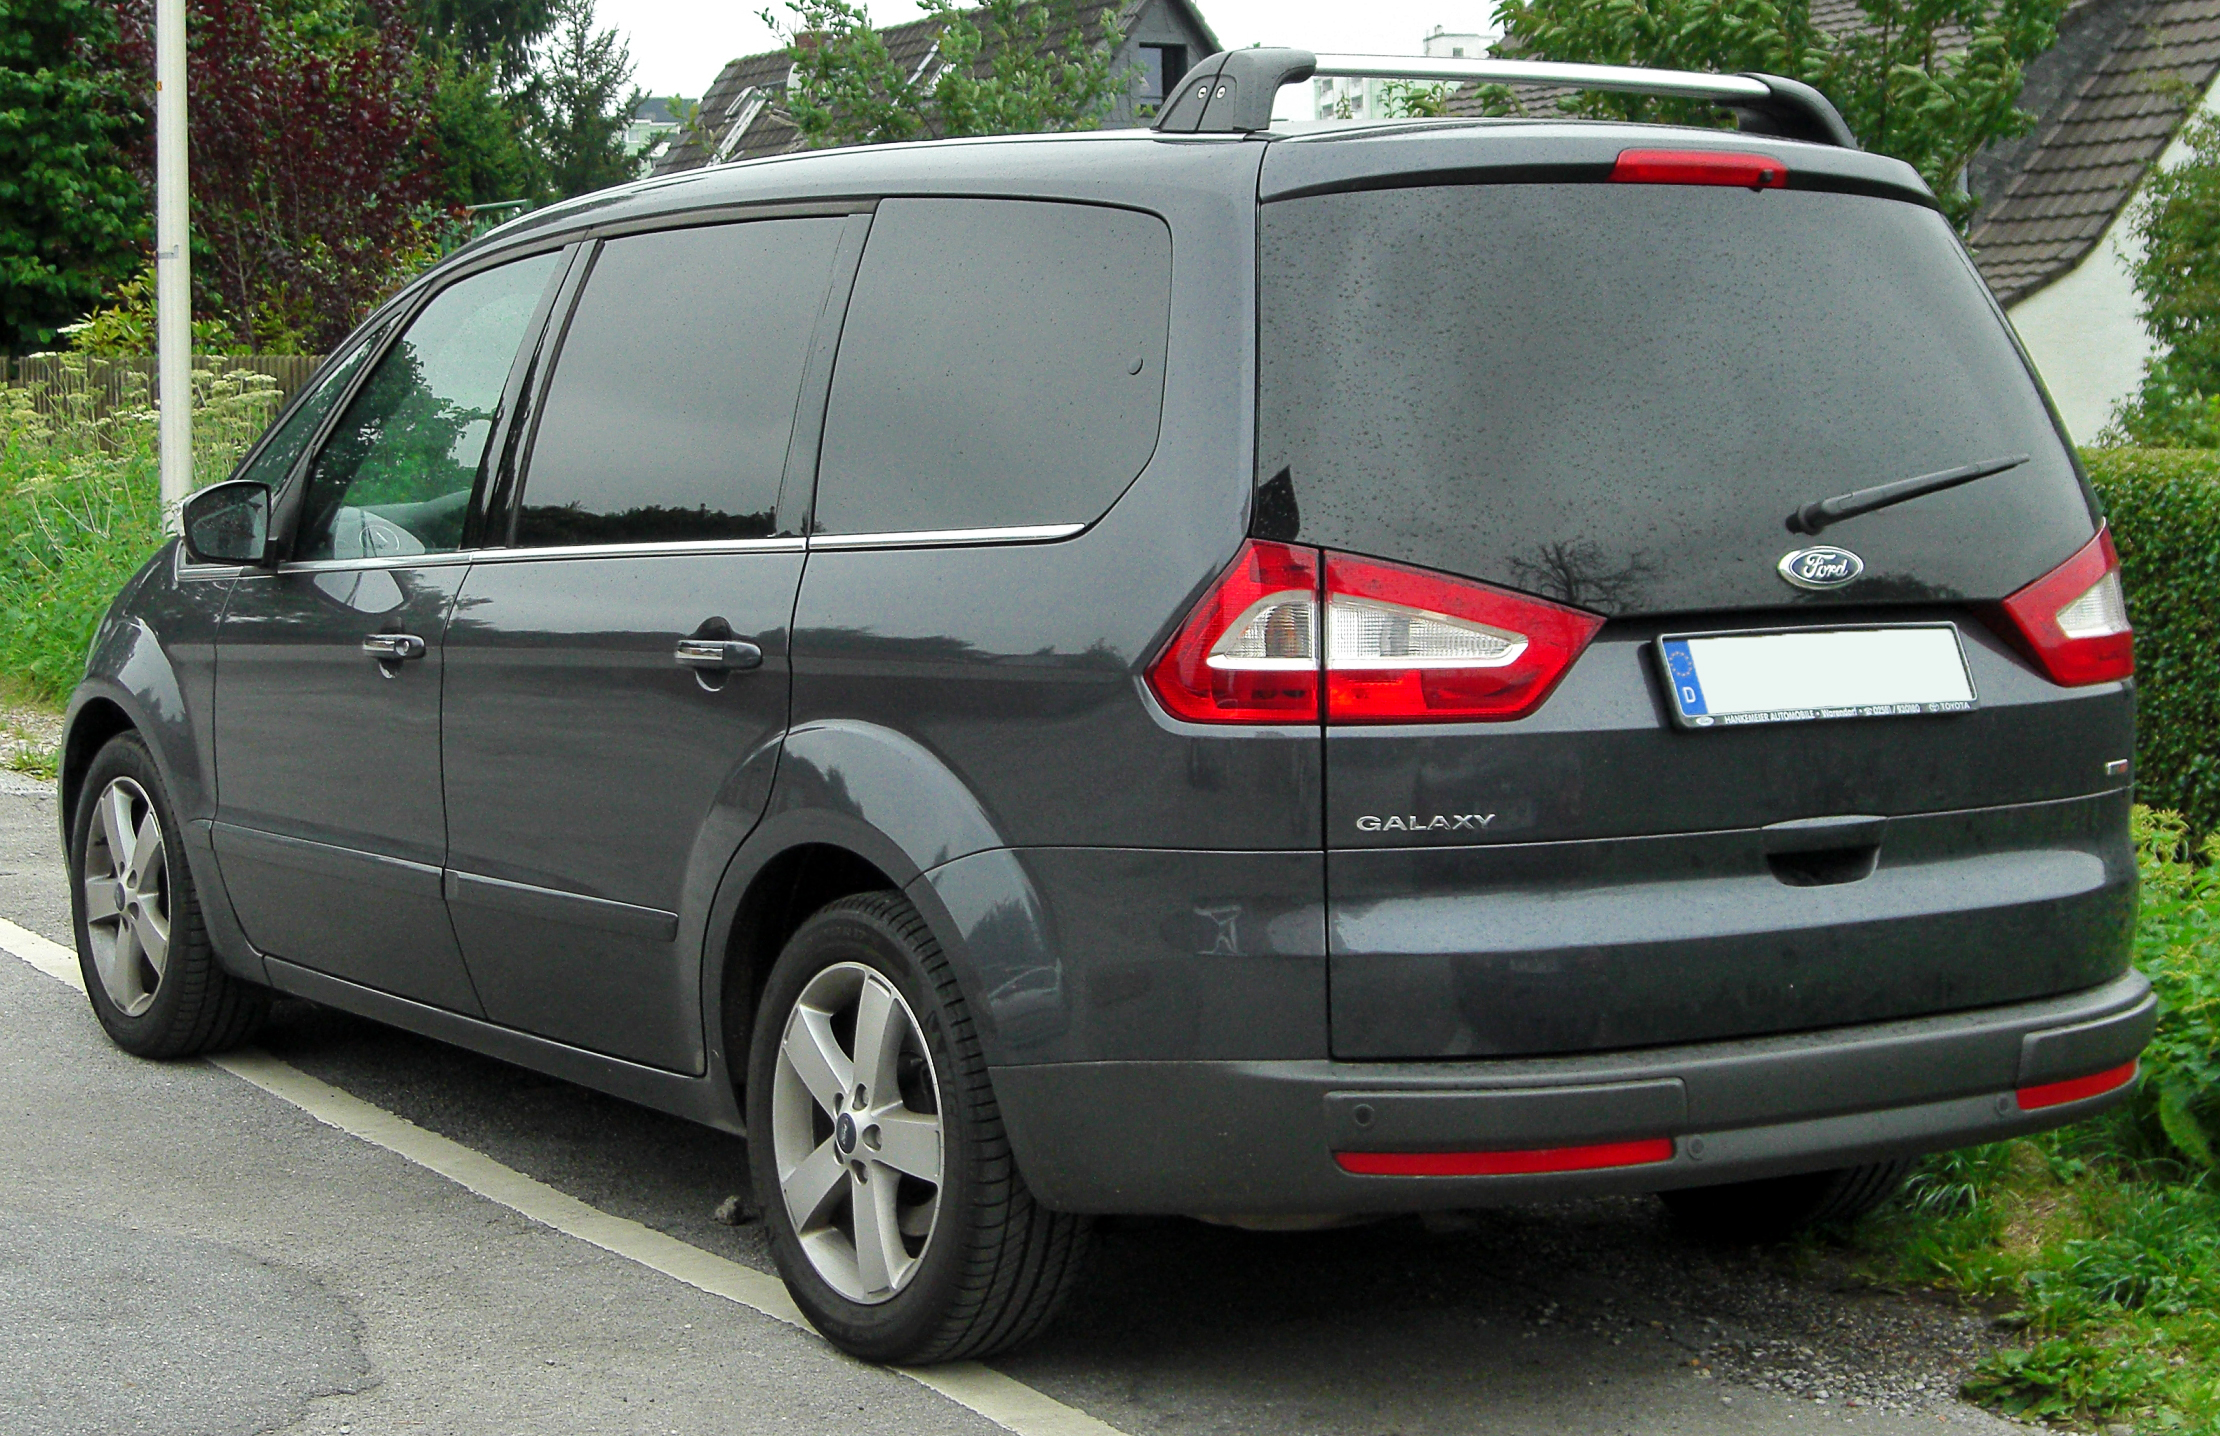 Ford Galaxy Keeping Families Together #13